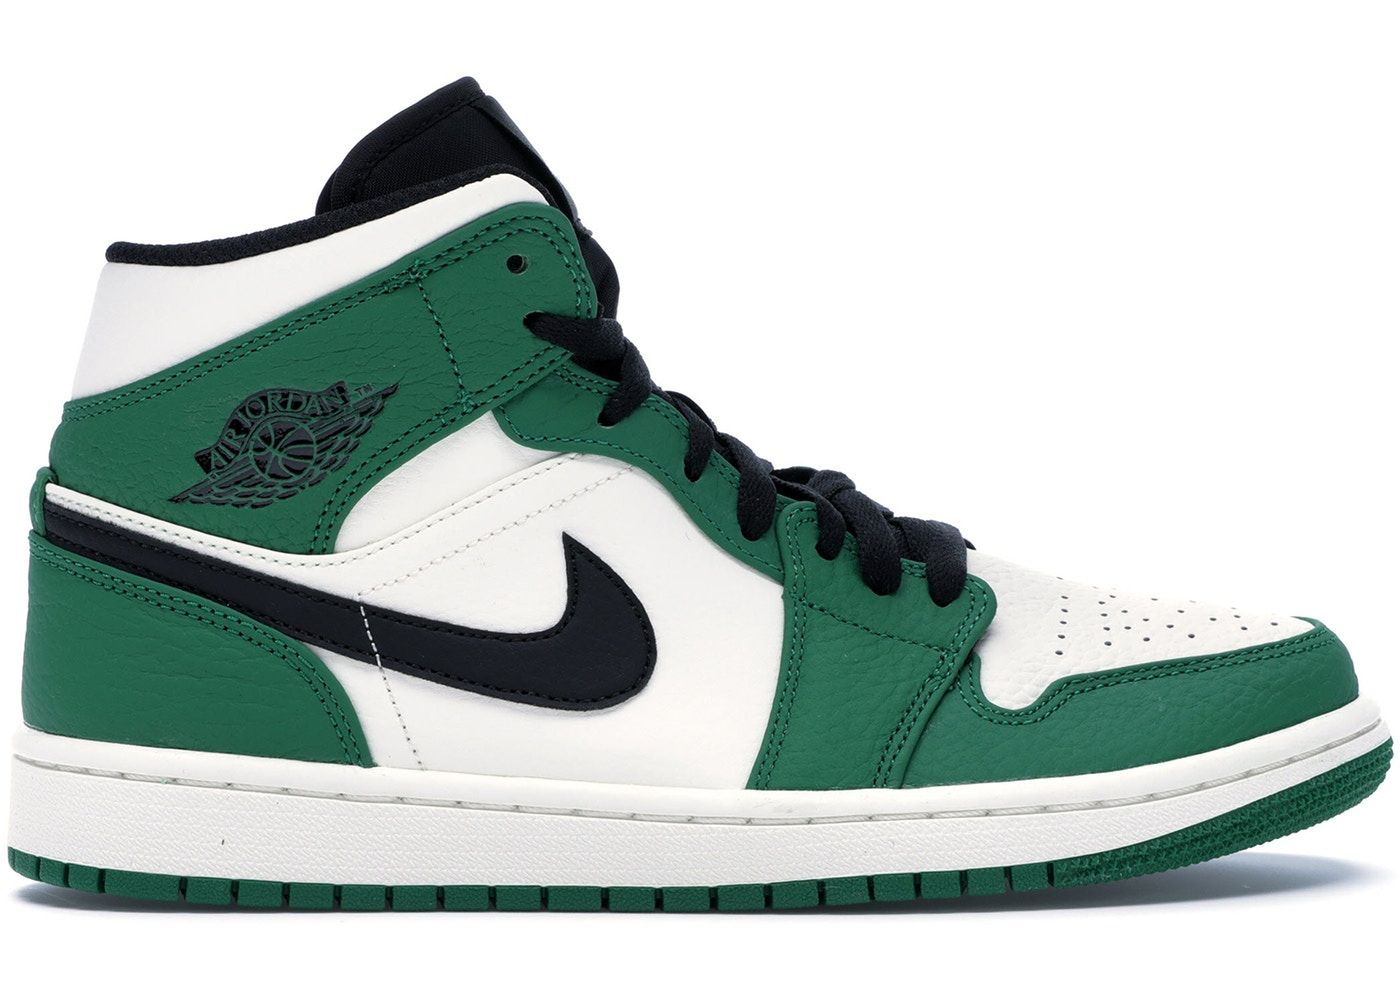 Jordan 1 Mid Pine Green in 2020 | Air jordans, Jordan 1 mid